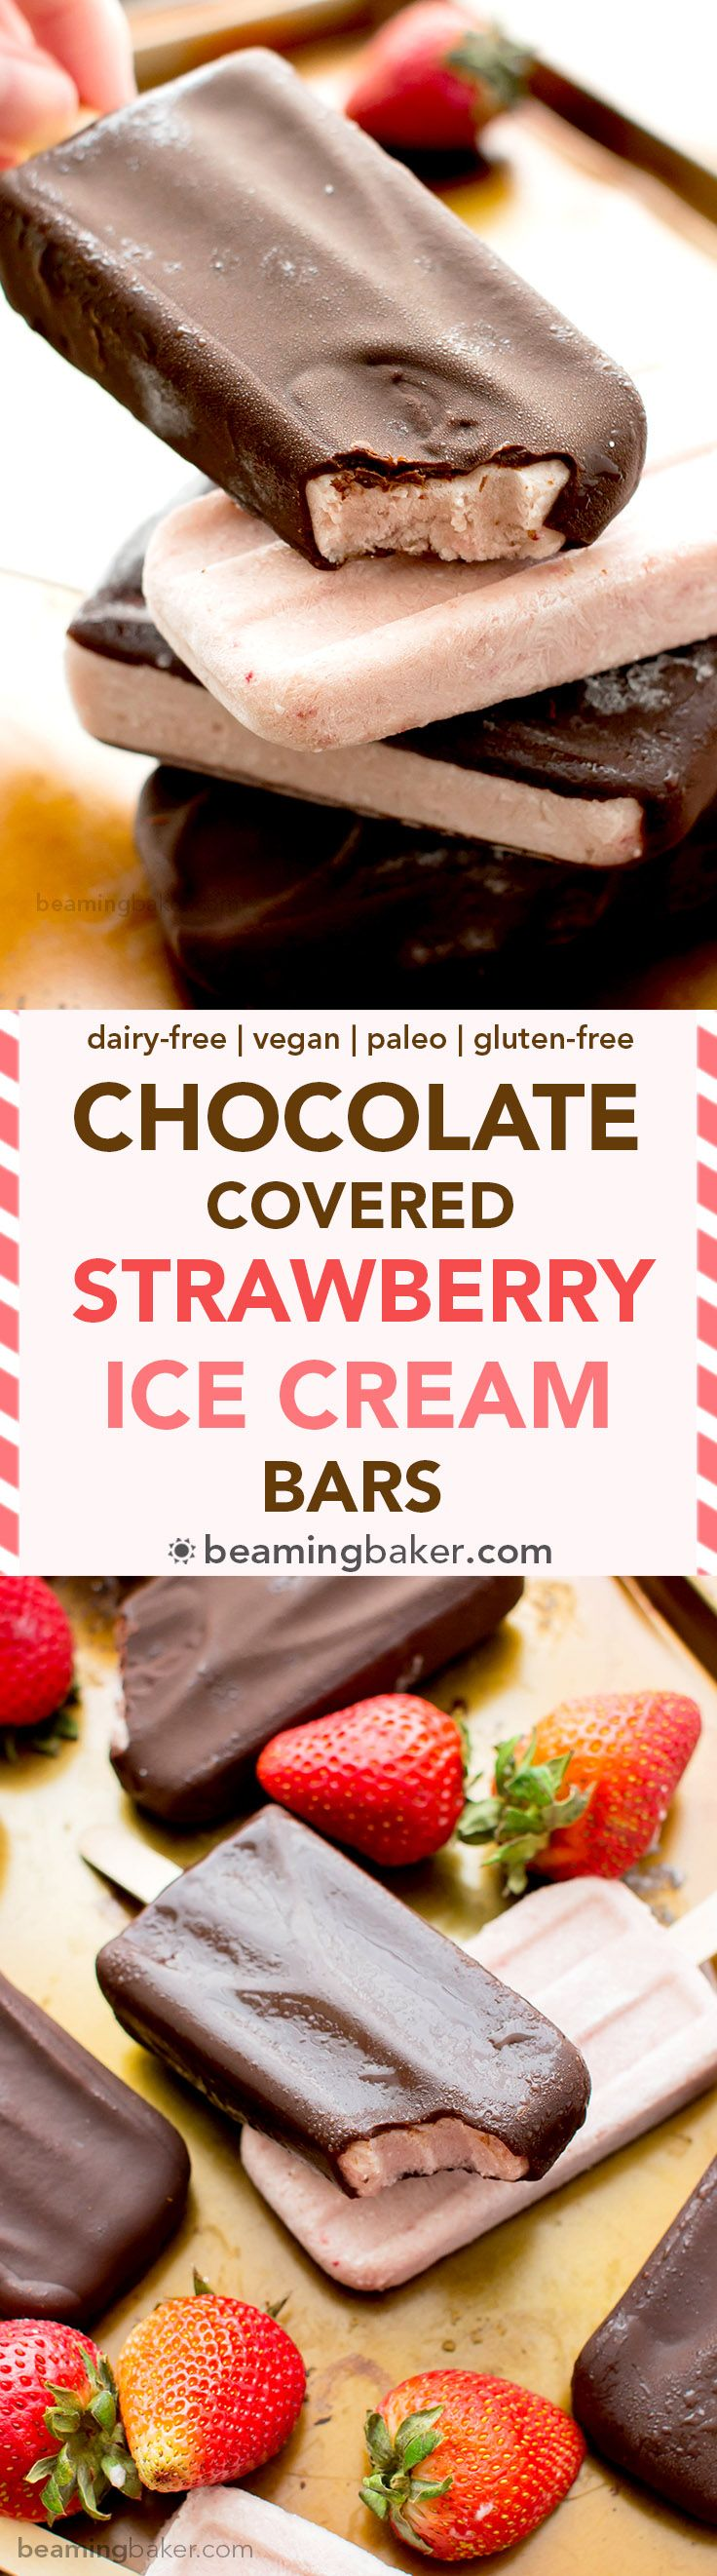 Chocolate-covered Strawberry Ice Cream Bars: a 6 ingredient recipe for amazing ice cream bars that taste like chocolate-covered strawberries. | Vegan & Gluten free